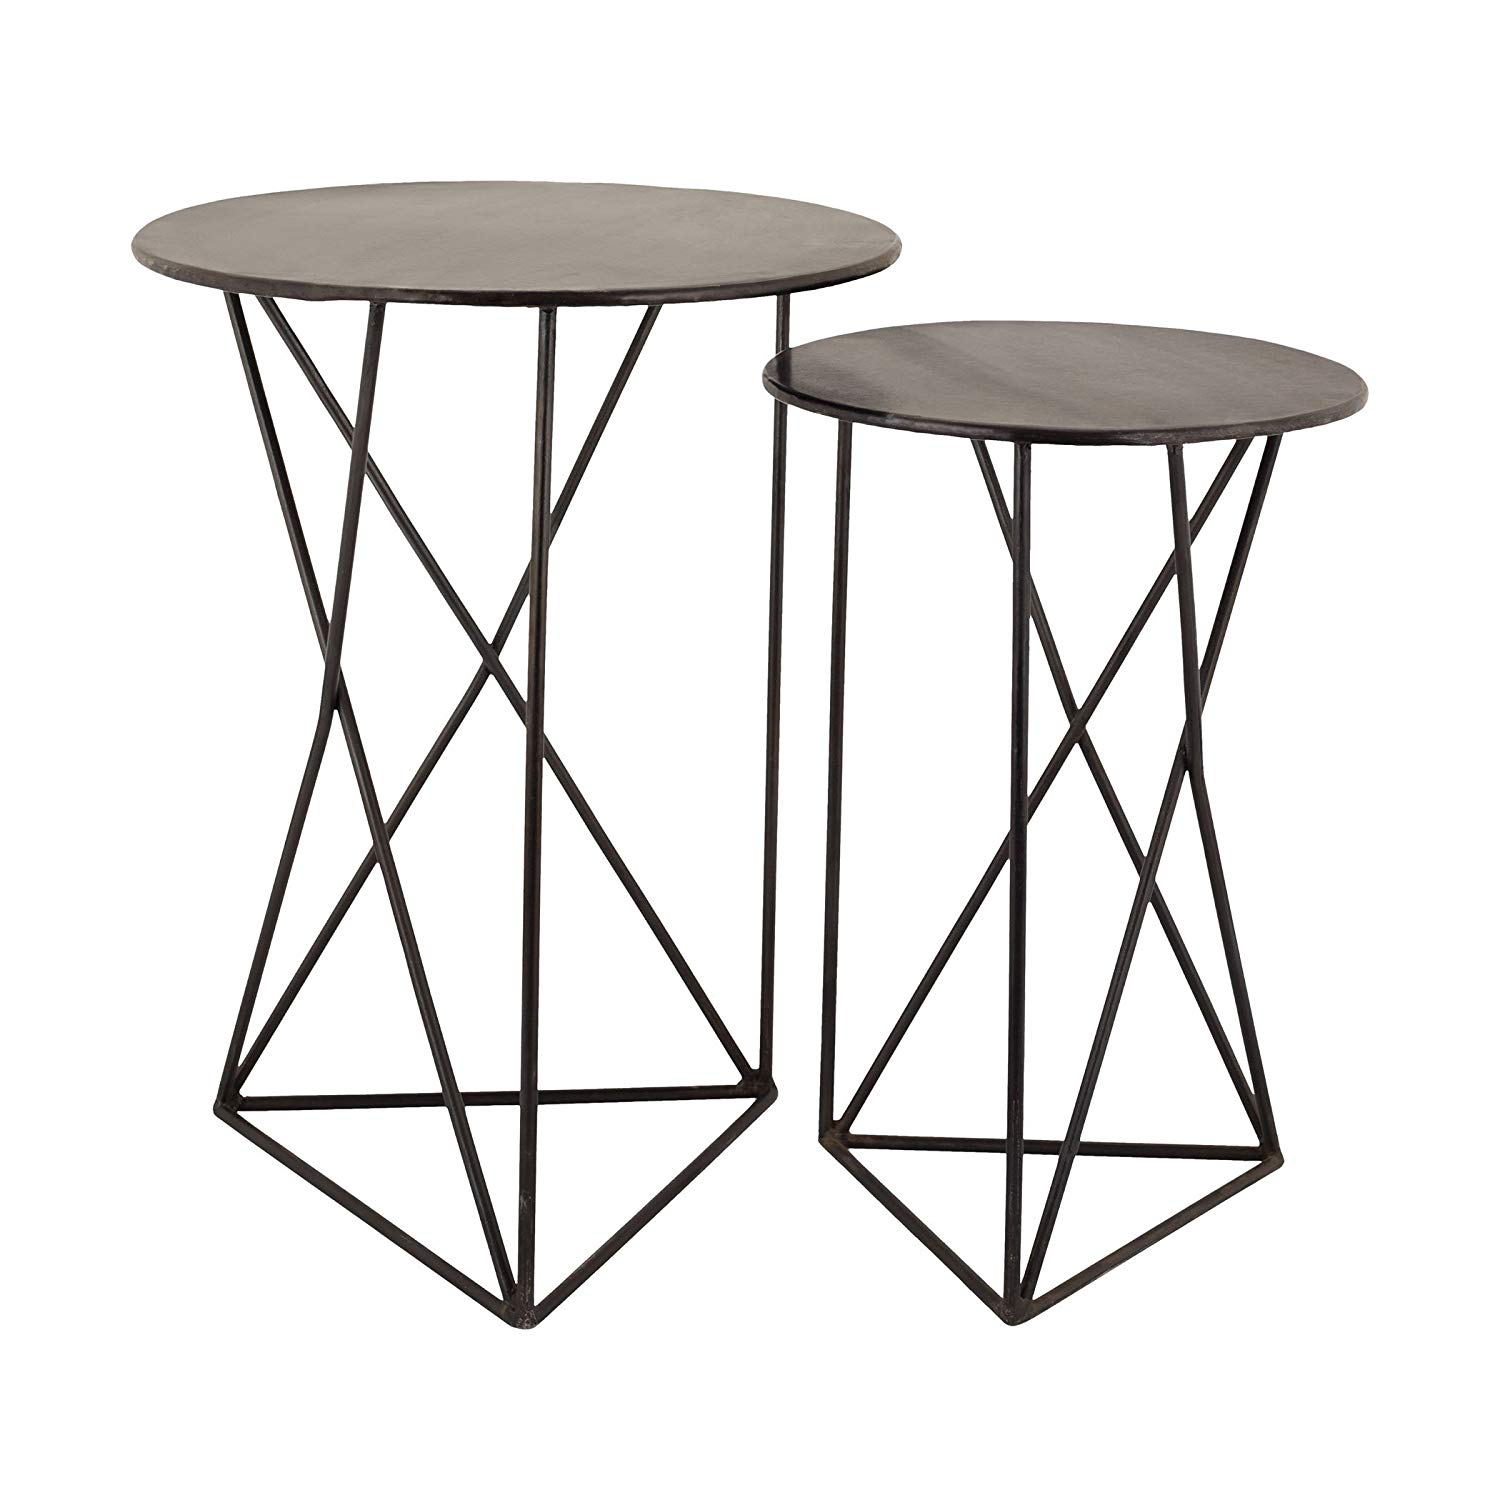 dimond home geometric metal accent tables round glynn table set kitchen dining lift top coffee ikea christmas decor dark wood and drum shaped wooden side small mosaic contemporary